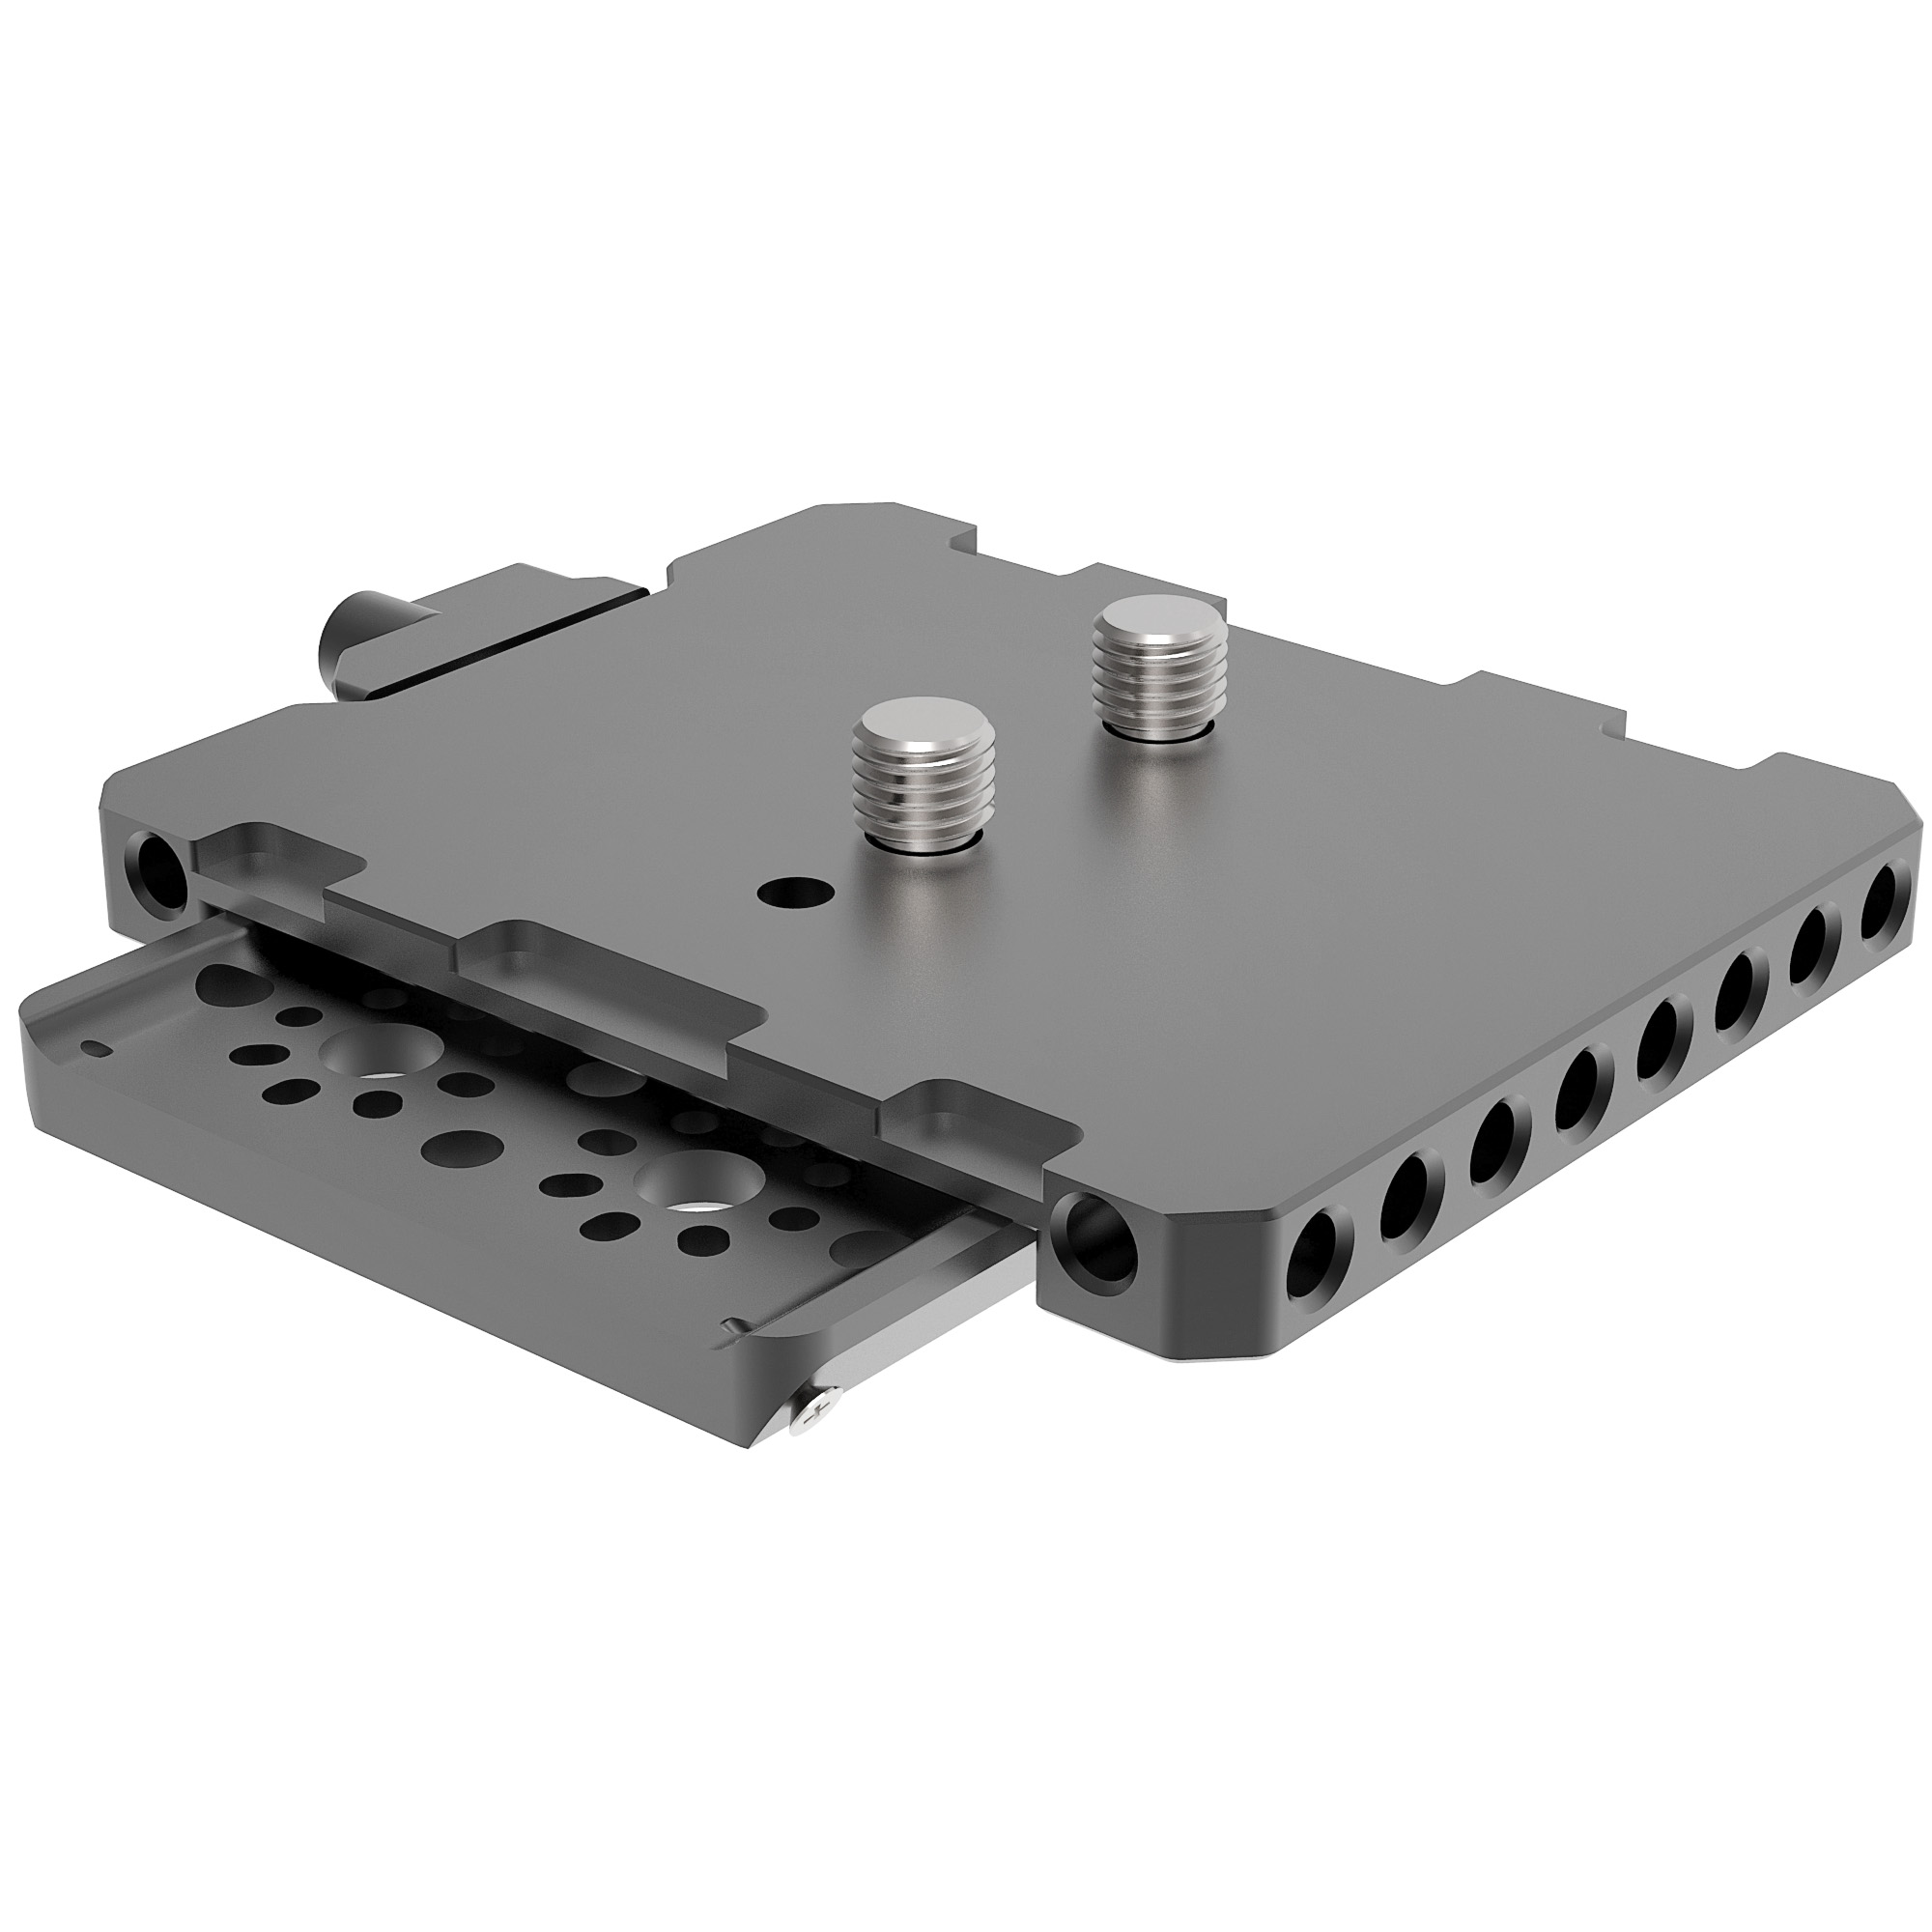 B4002.0001 Left Field Baseplate for DSMC2 1